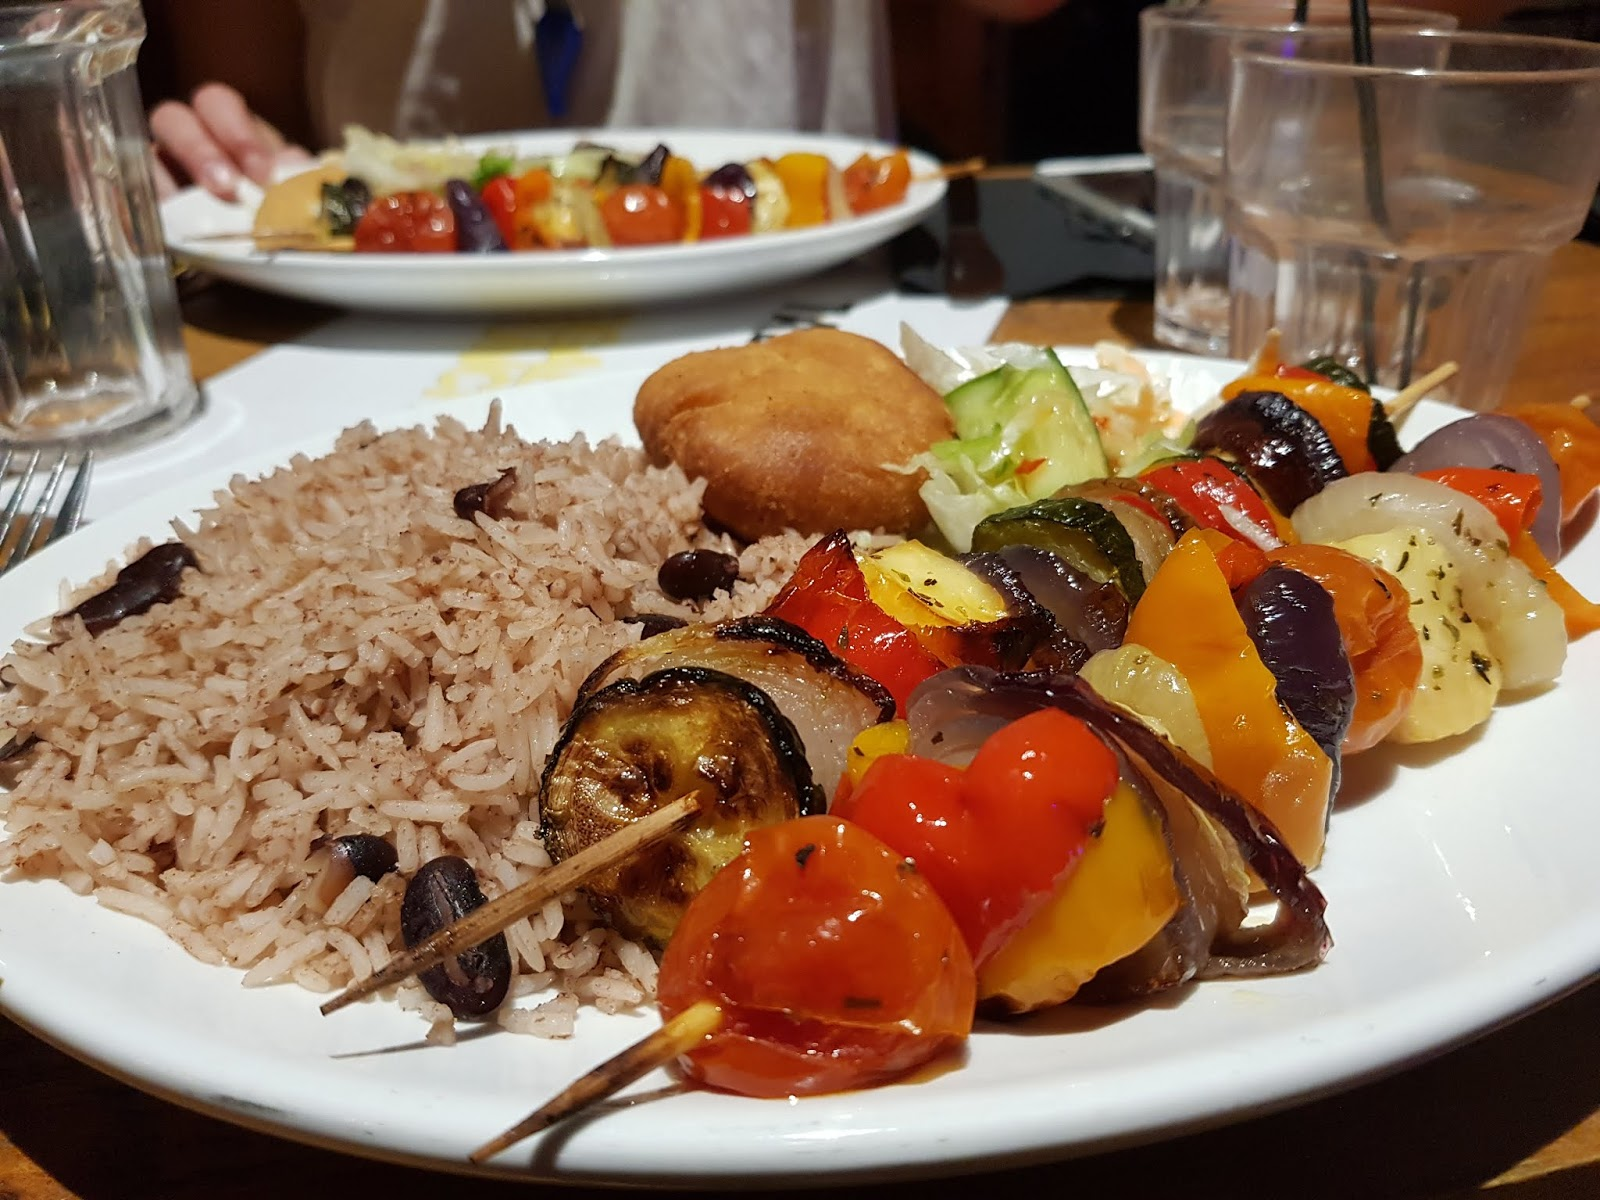 Reggae Brunch vegetarian main course: Grilled Vegetable and Halloumi skewers, rice and peas, side of coleslaw, mixed salad and dumpling